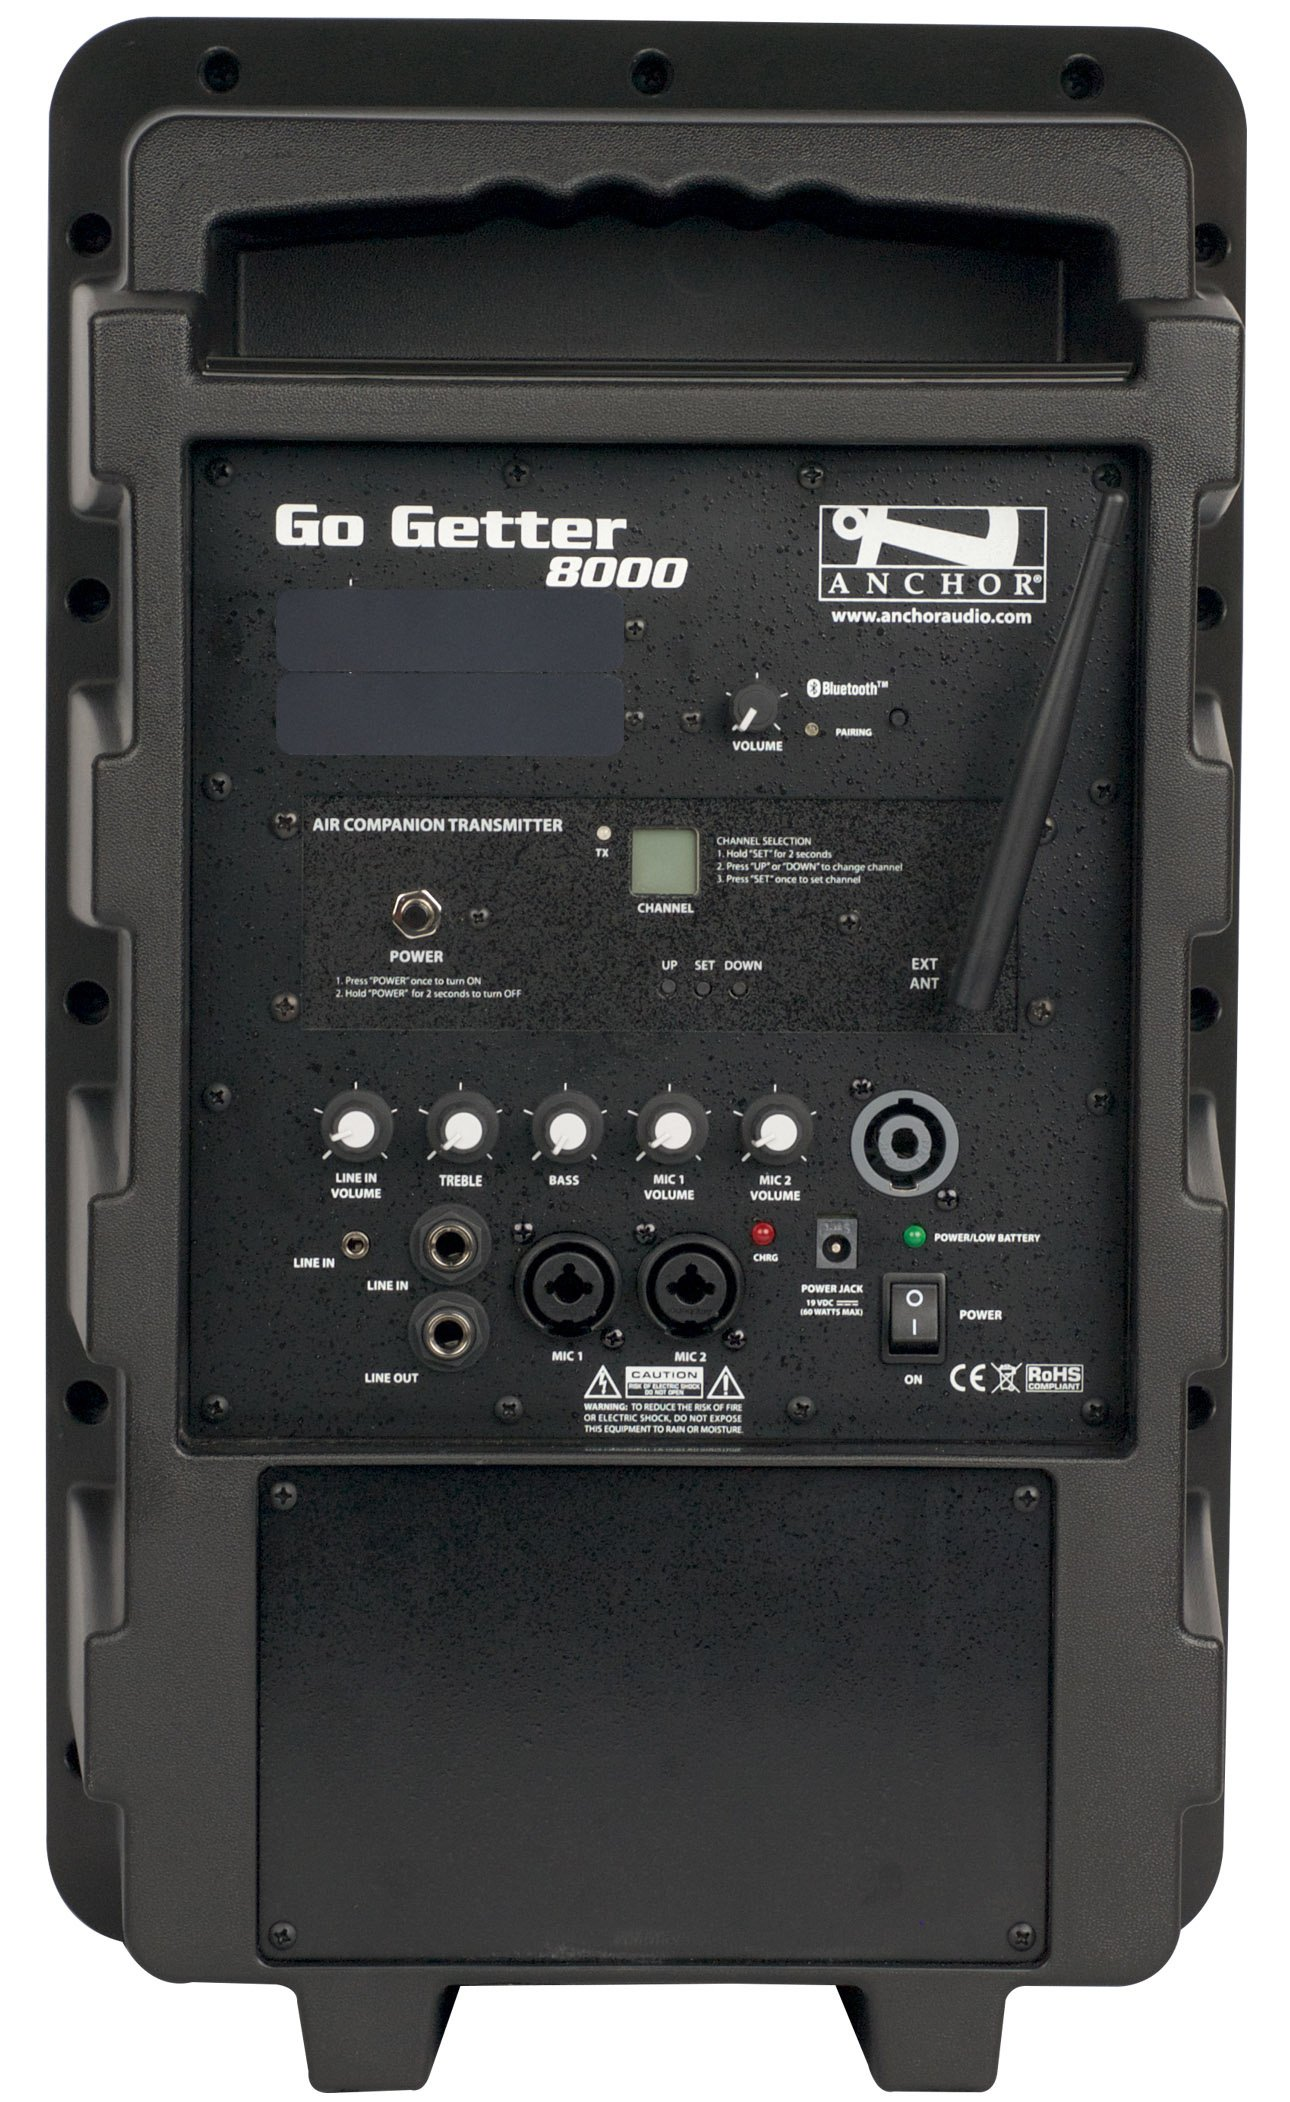 Go Getter with AIR Wireless Companion Transmitter